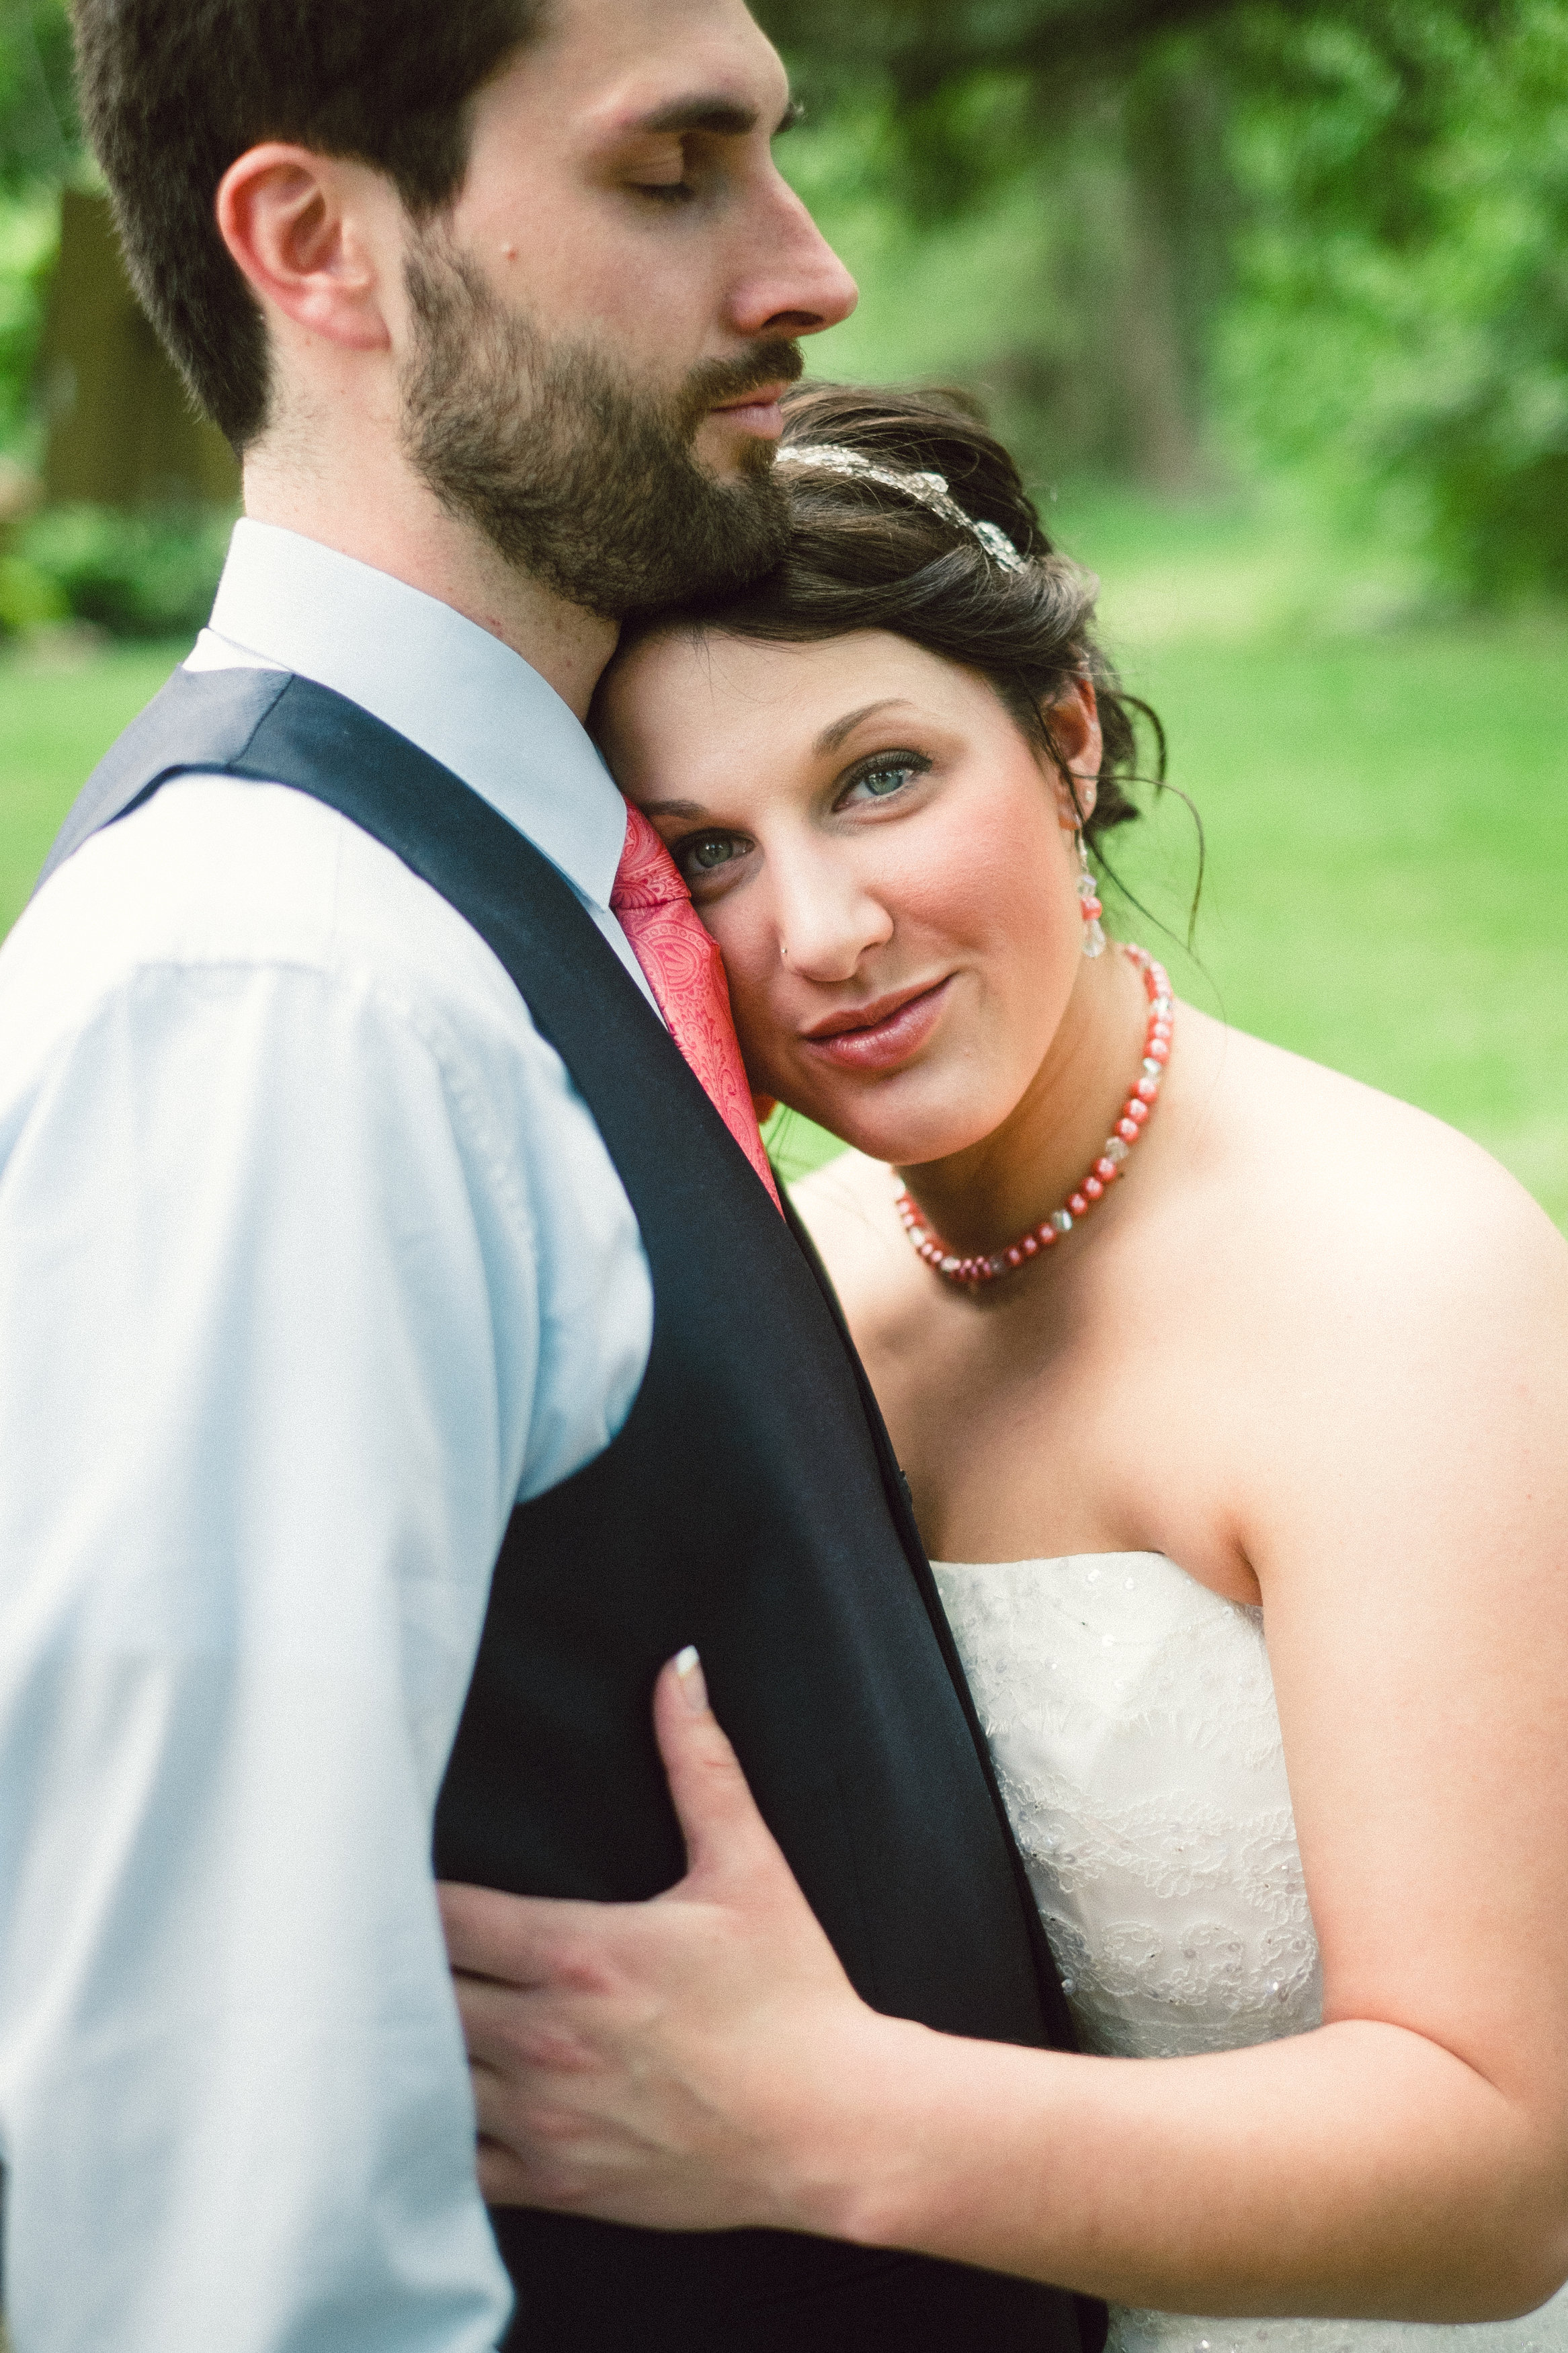 PennsylvaniaWeddingPhotographer-88.jpg